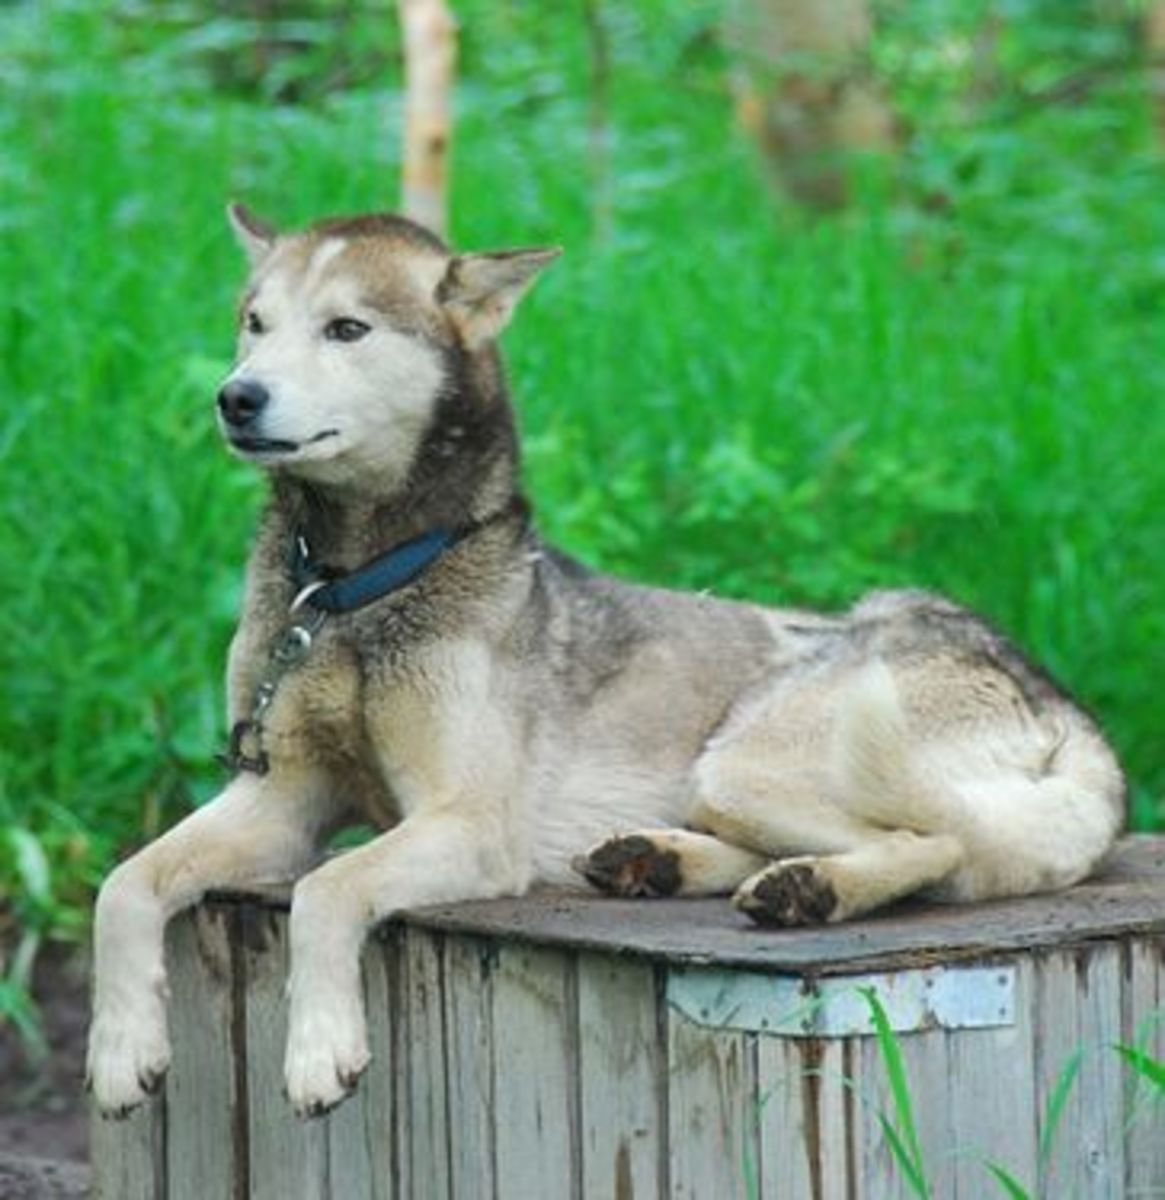 Some Siberian huskies look more like wolves than others.